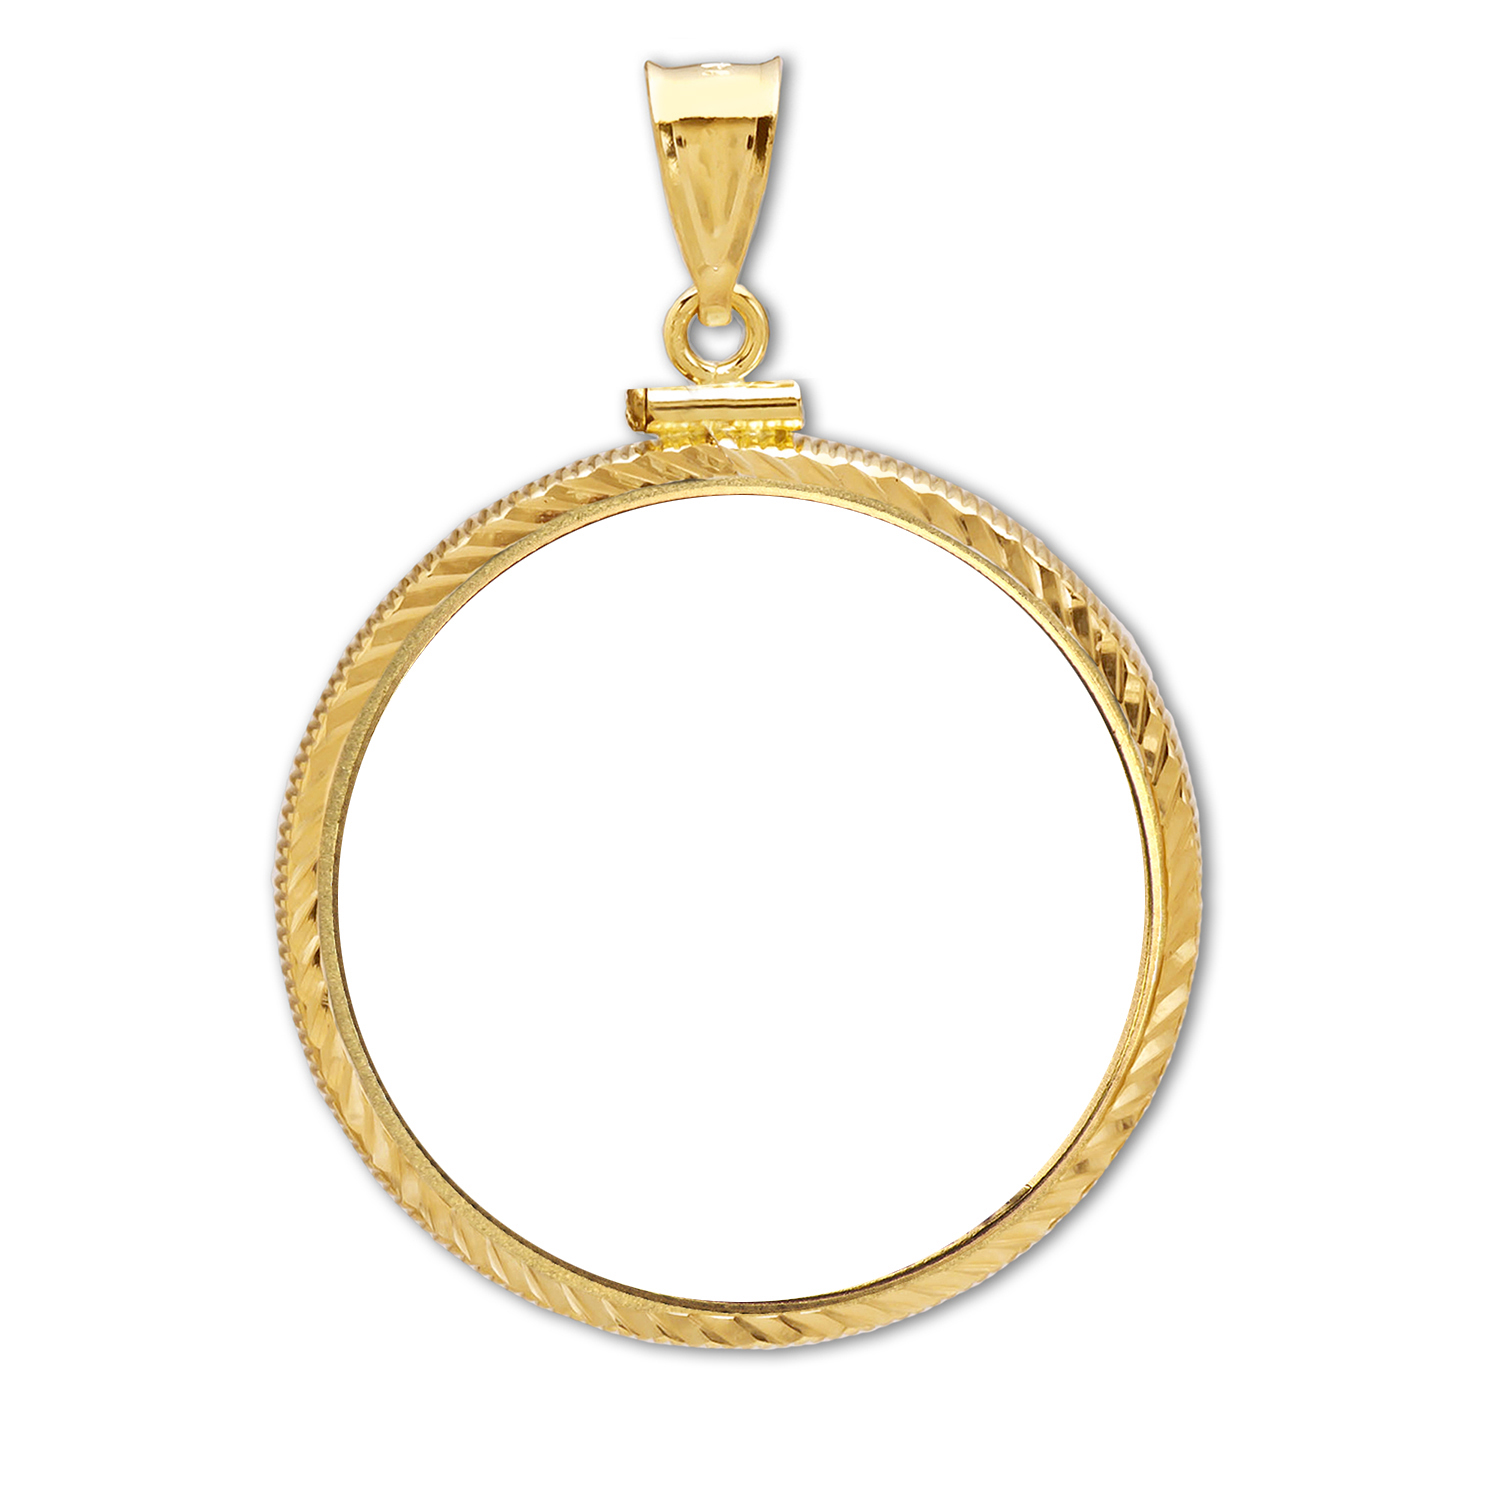 14K Gold Screw-Top Diamond-Cut Coin Bezel - 32 mm